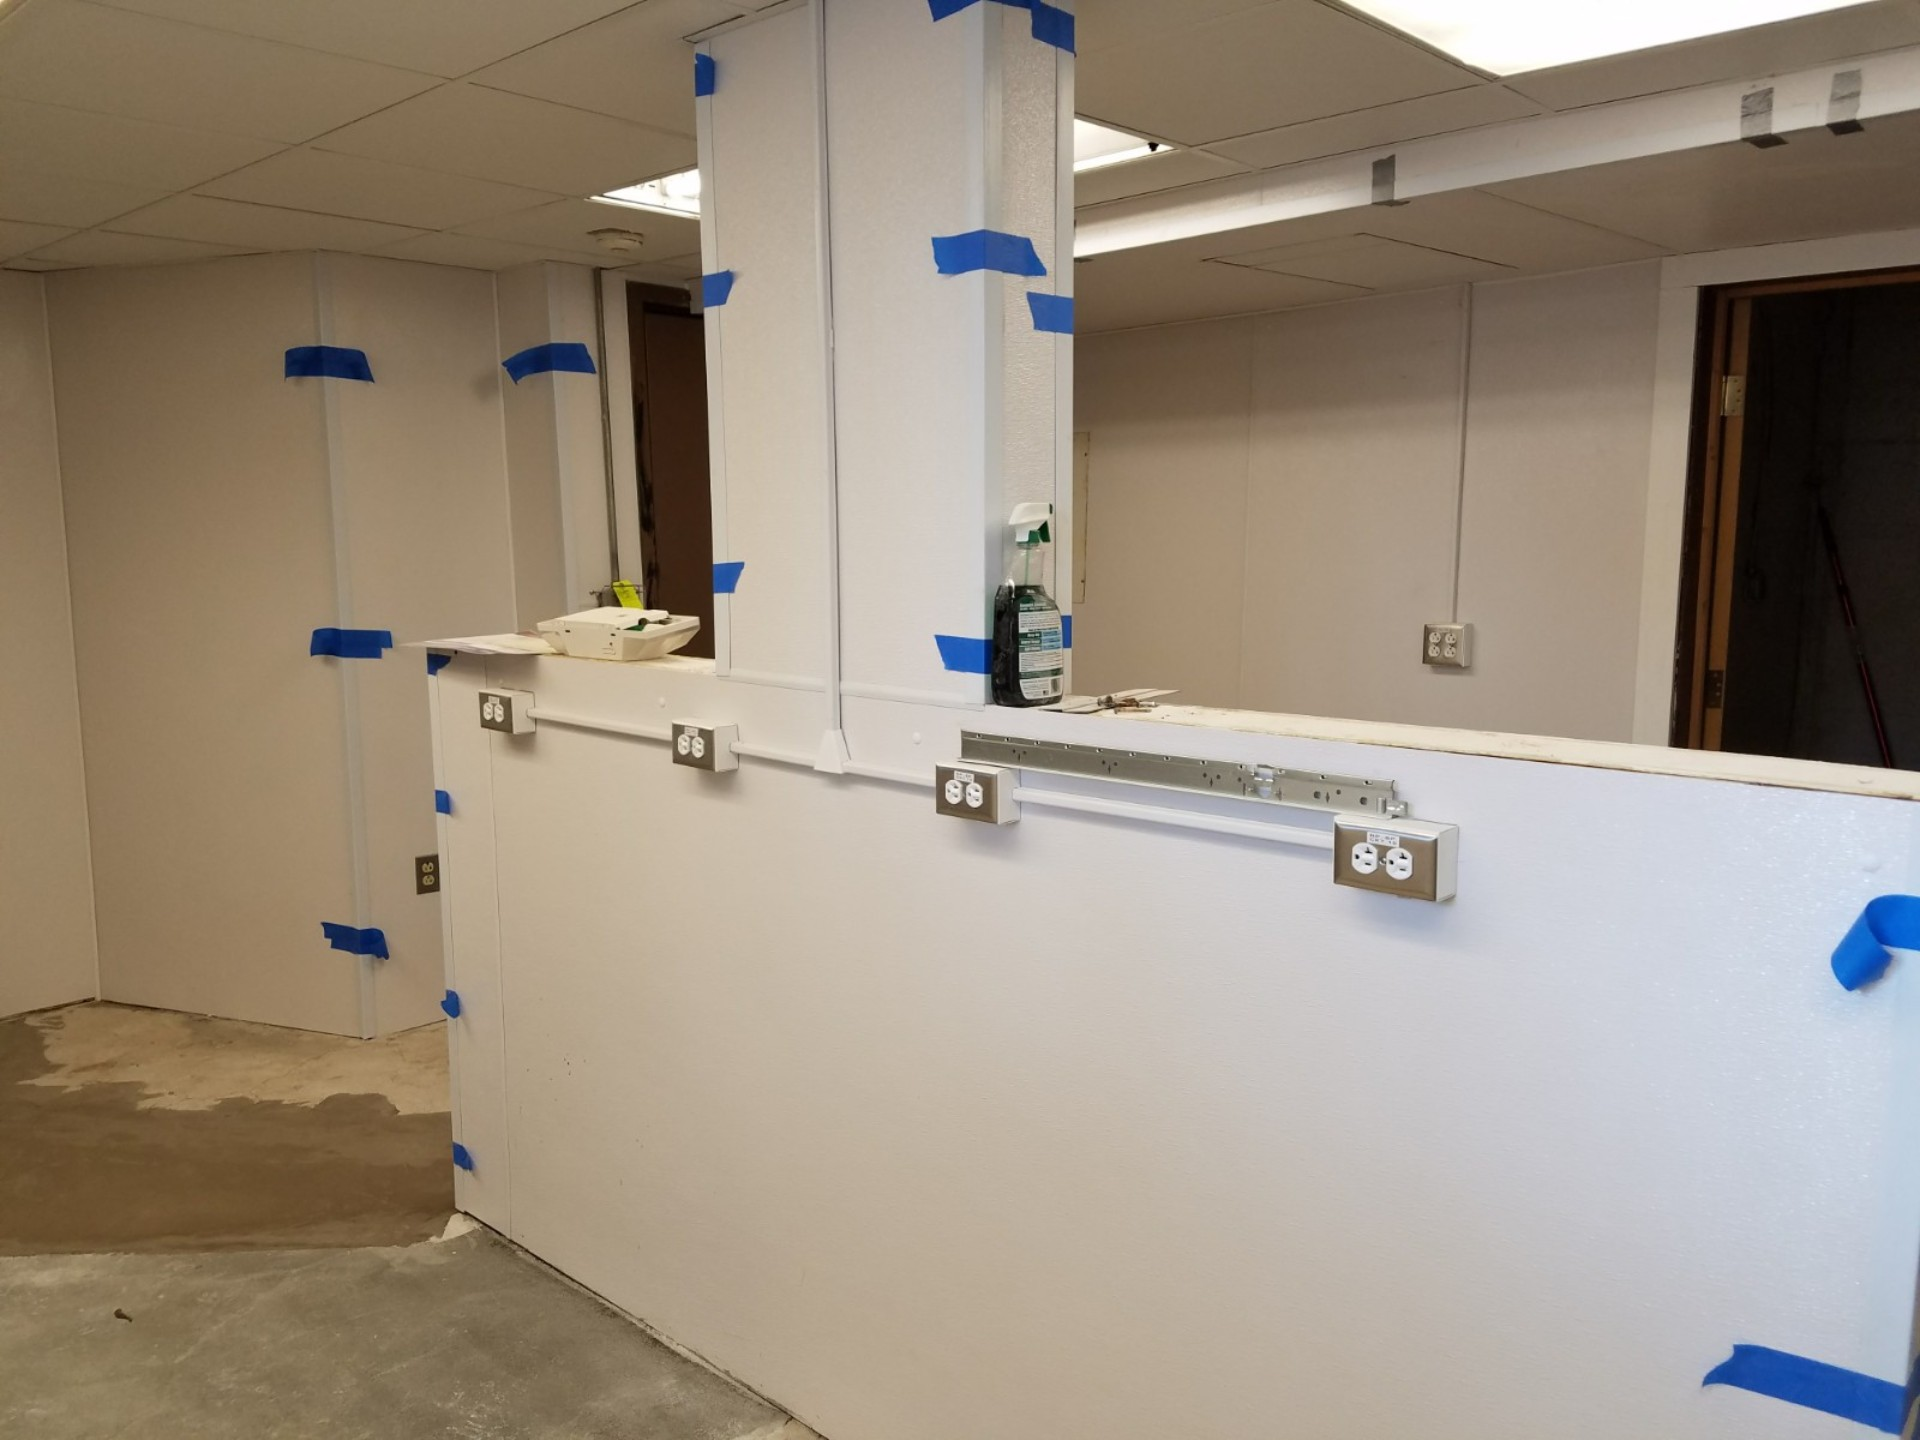 2017-2018_Kitchen_Renovation_1920_20171231_152954_during_construction.jpg